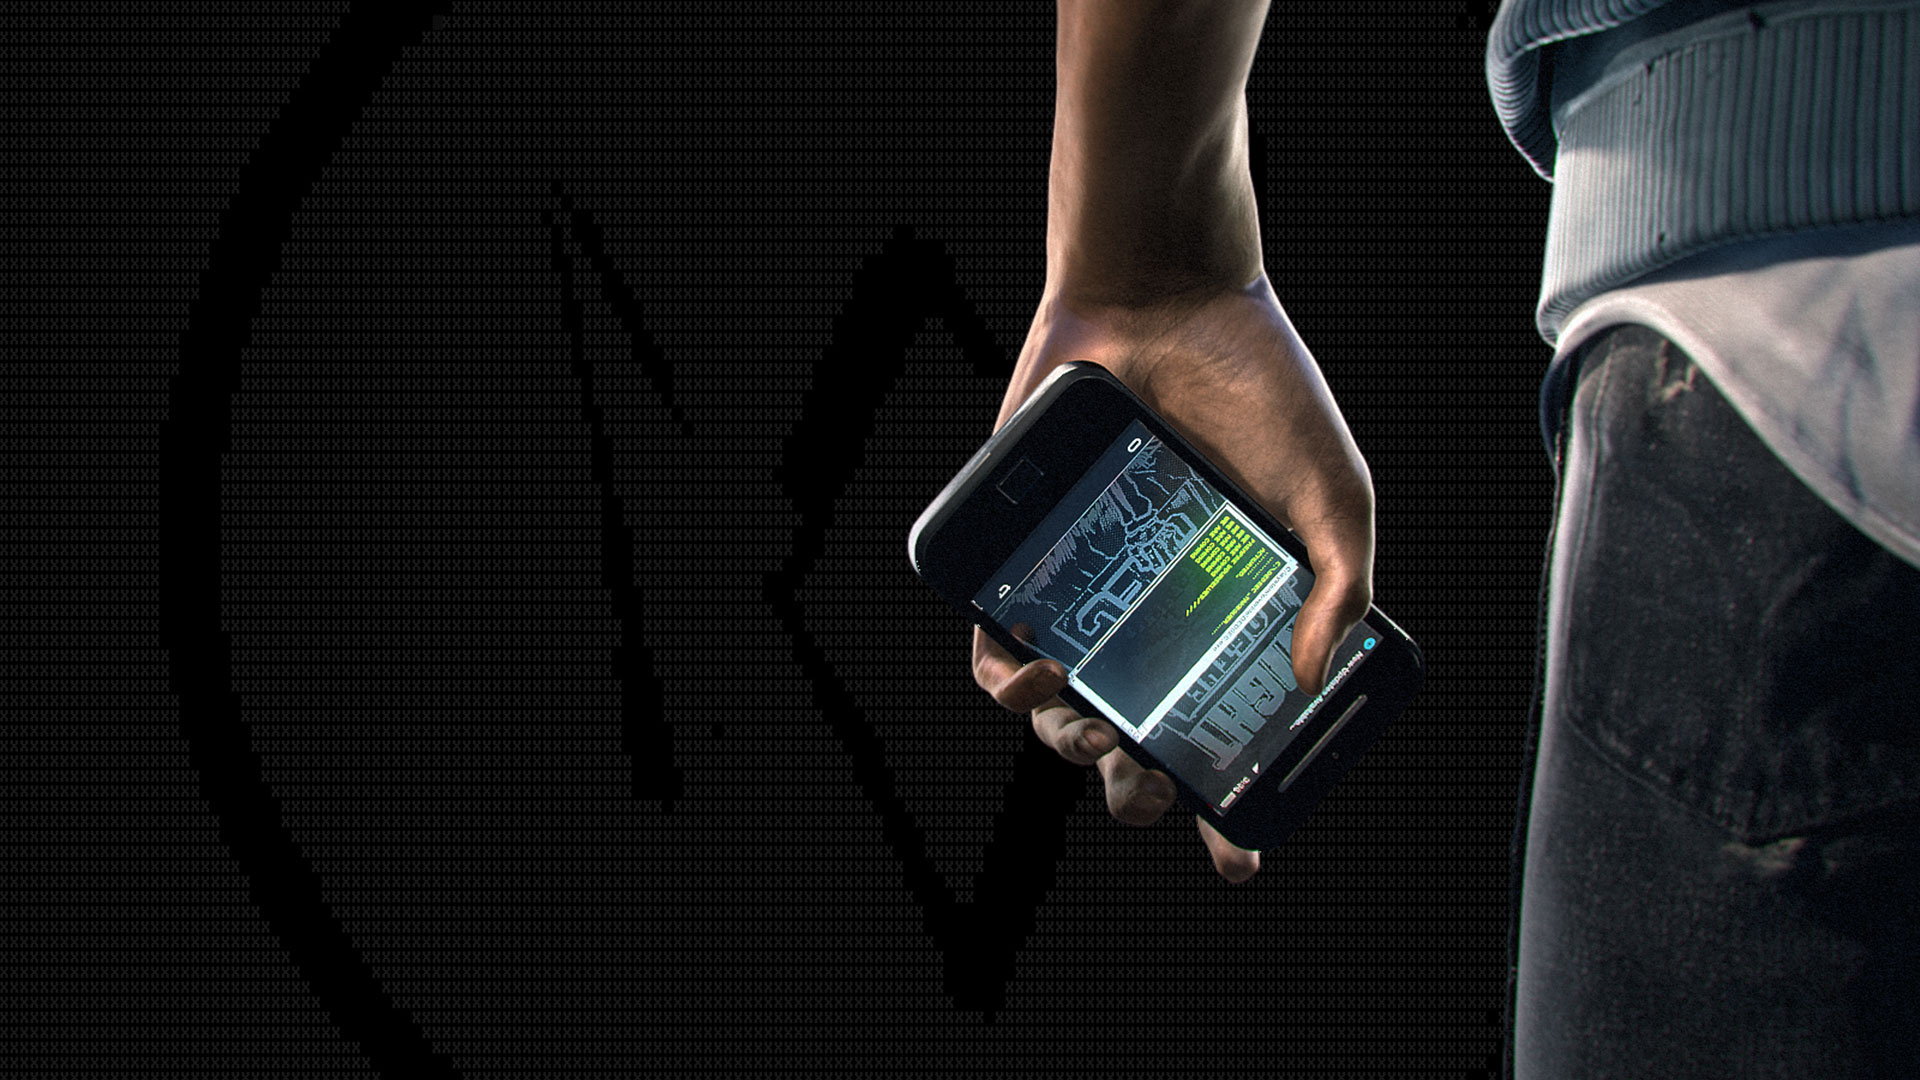 watch dogs 2 how to download driver app